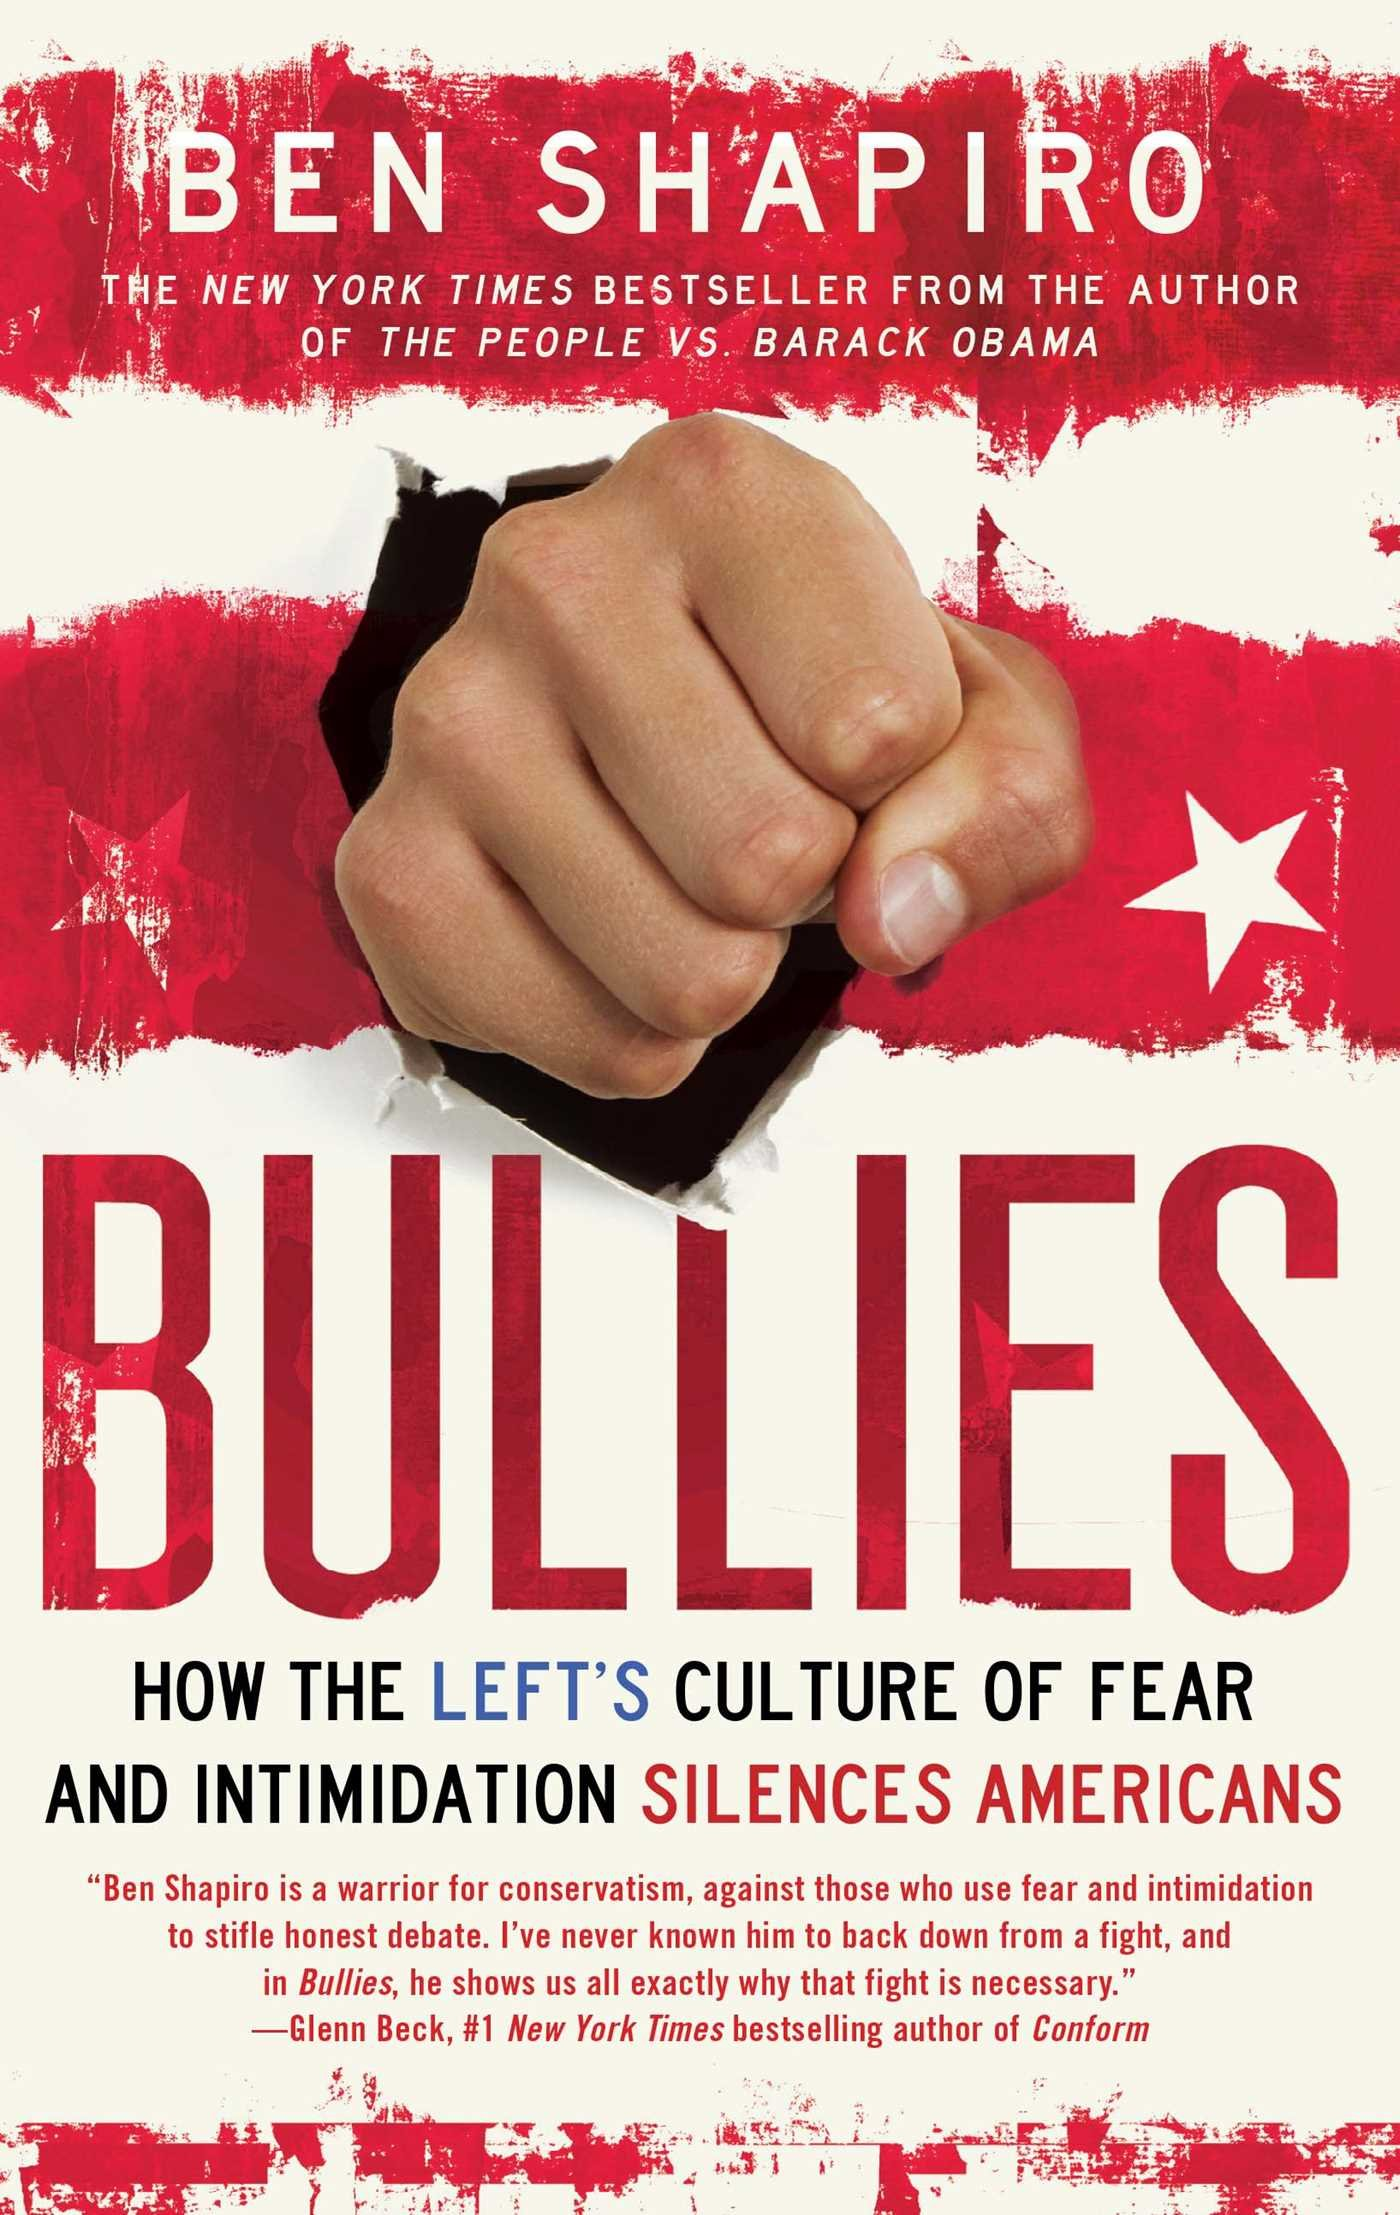 Bullies: How the Left's Culture of Fear and Intimidation Silences Americans by Ben Shapiro